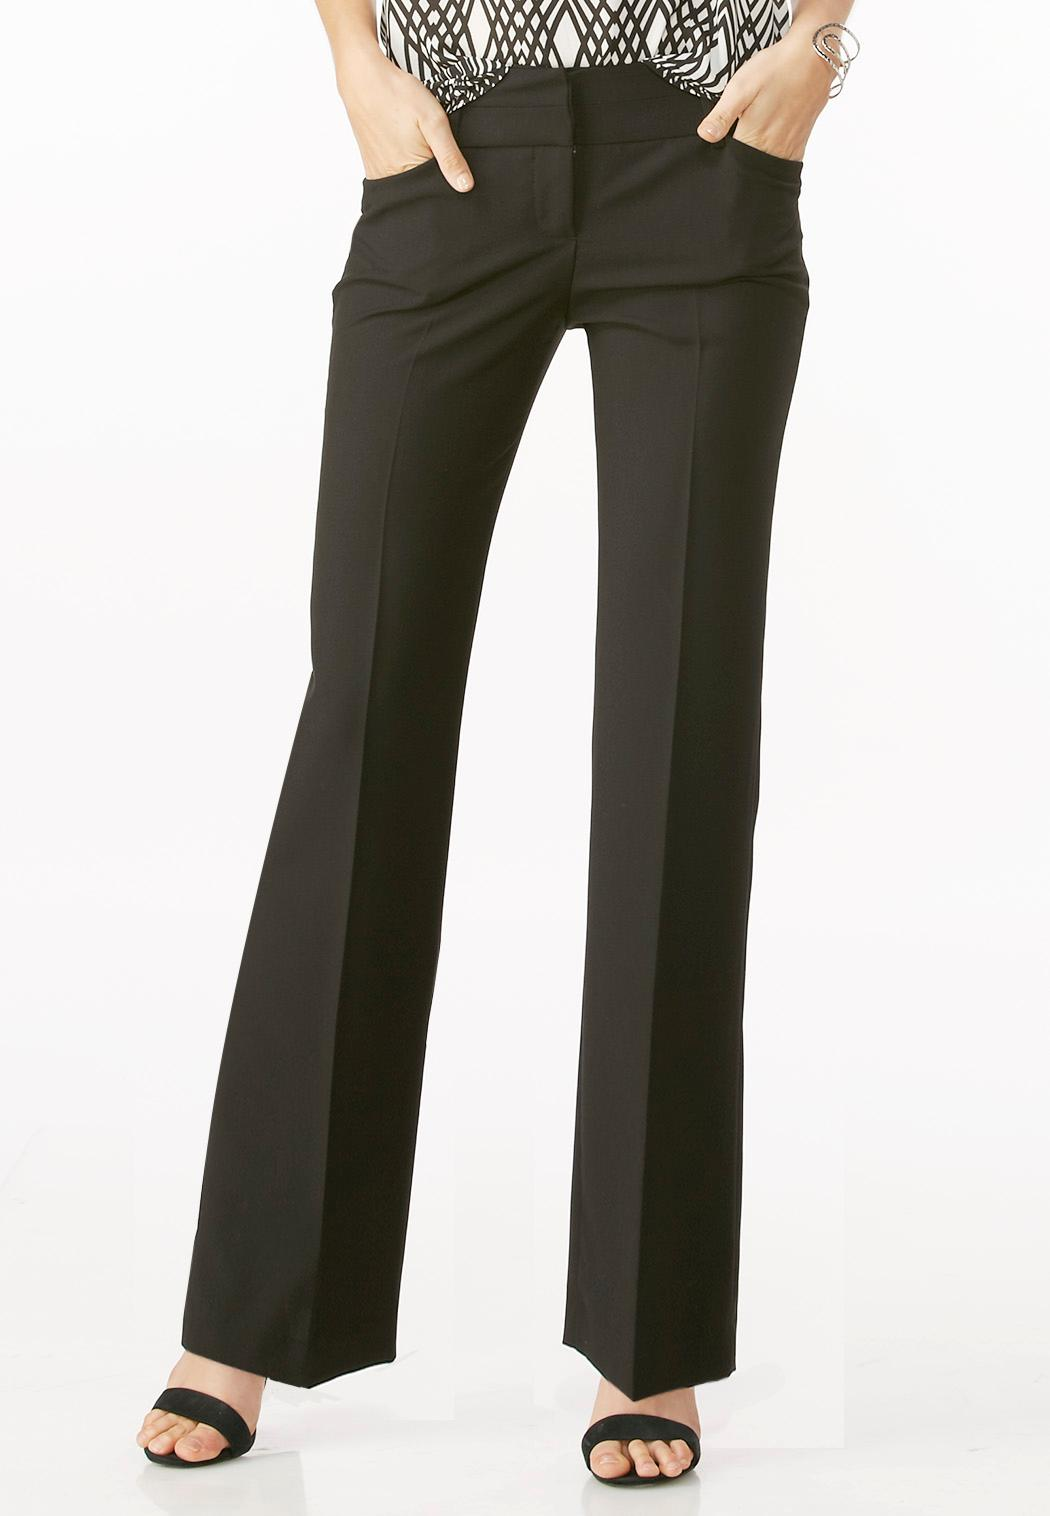 6c418d26 Contemporary Fit Essential Trousers Trouser Cato Fashions